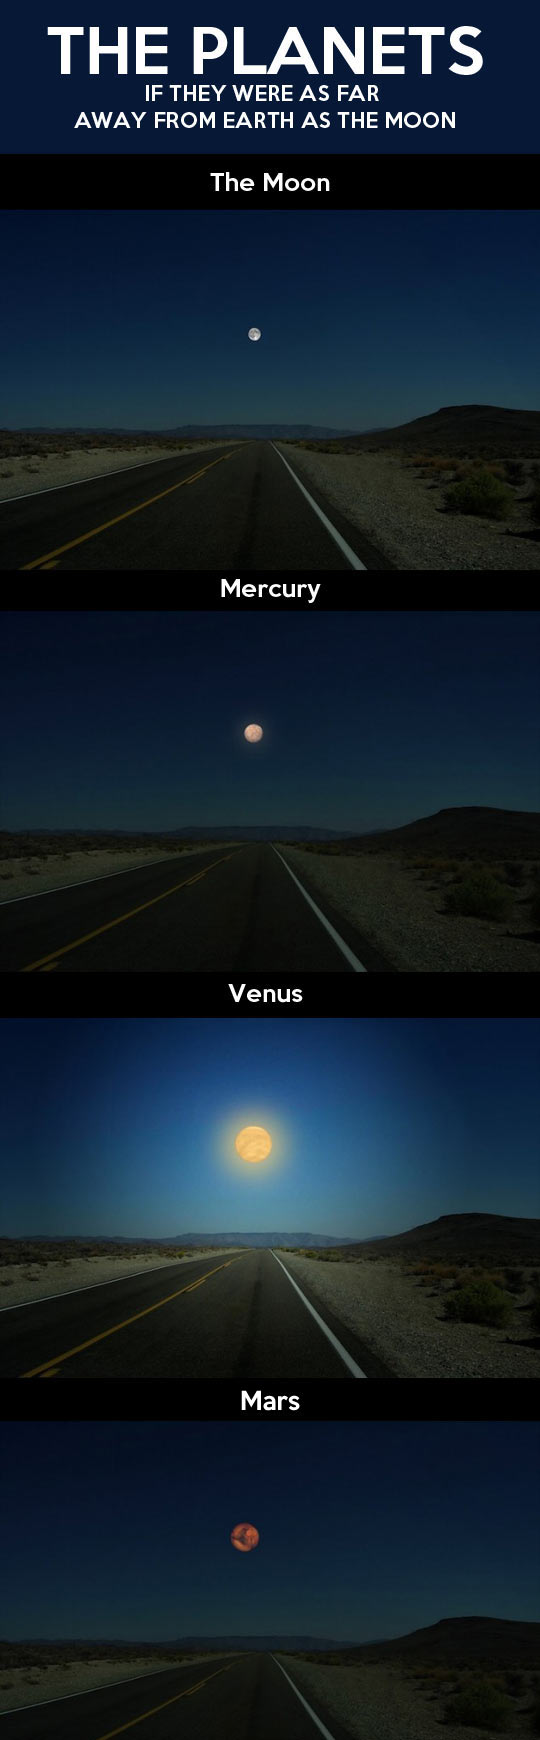 moon-distance-planets